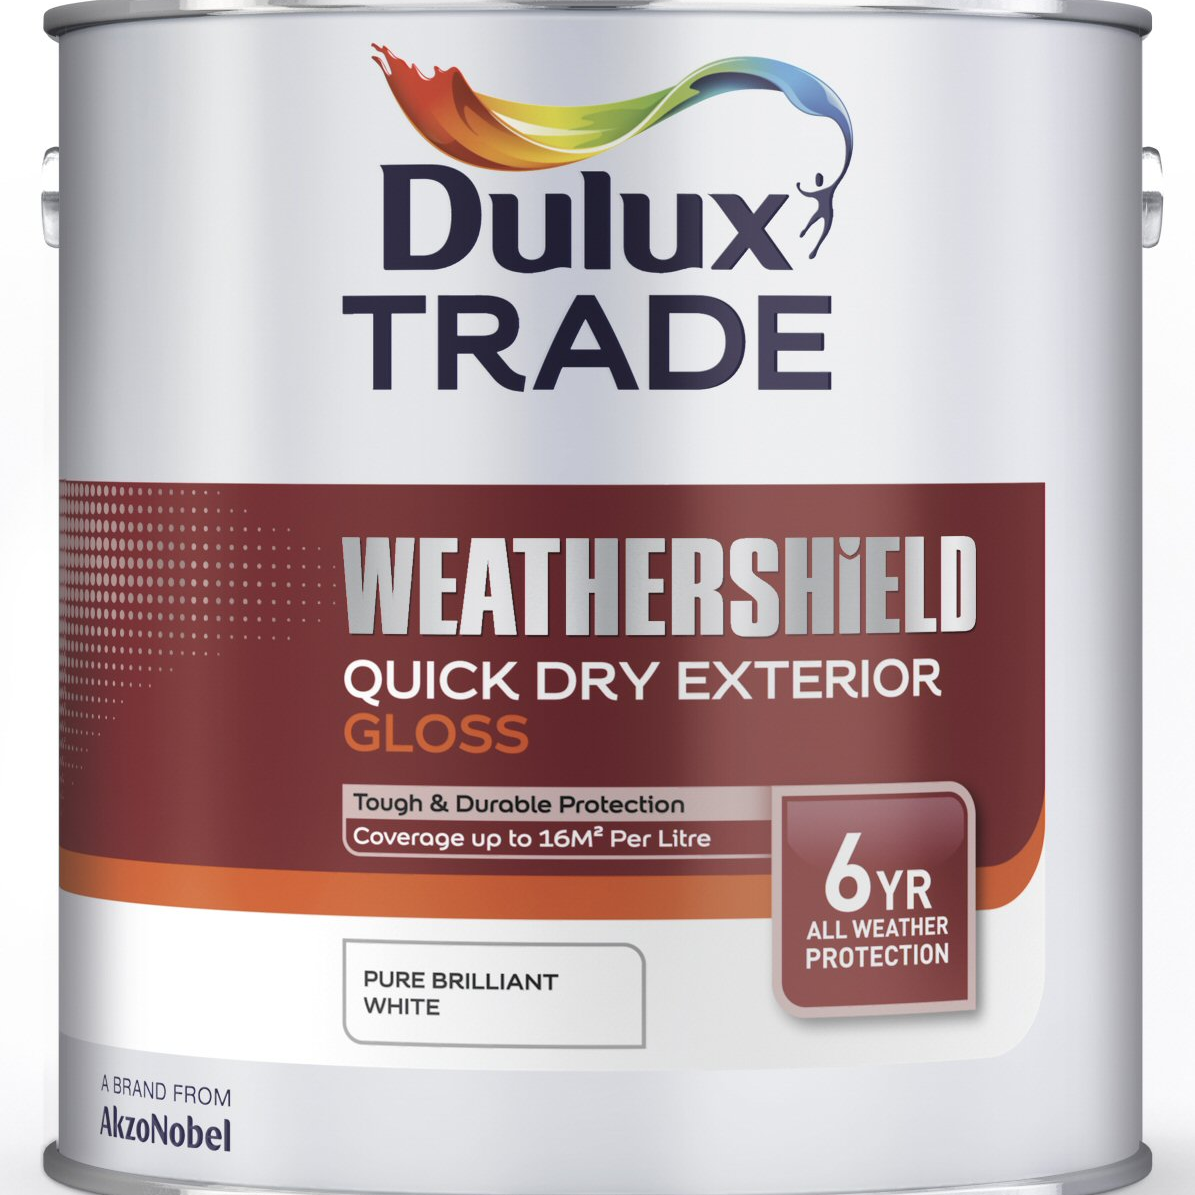 Dulux trade weathershield quick dry exterior gloss custom - Weathershield exterior paint system ...